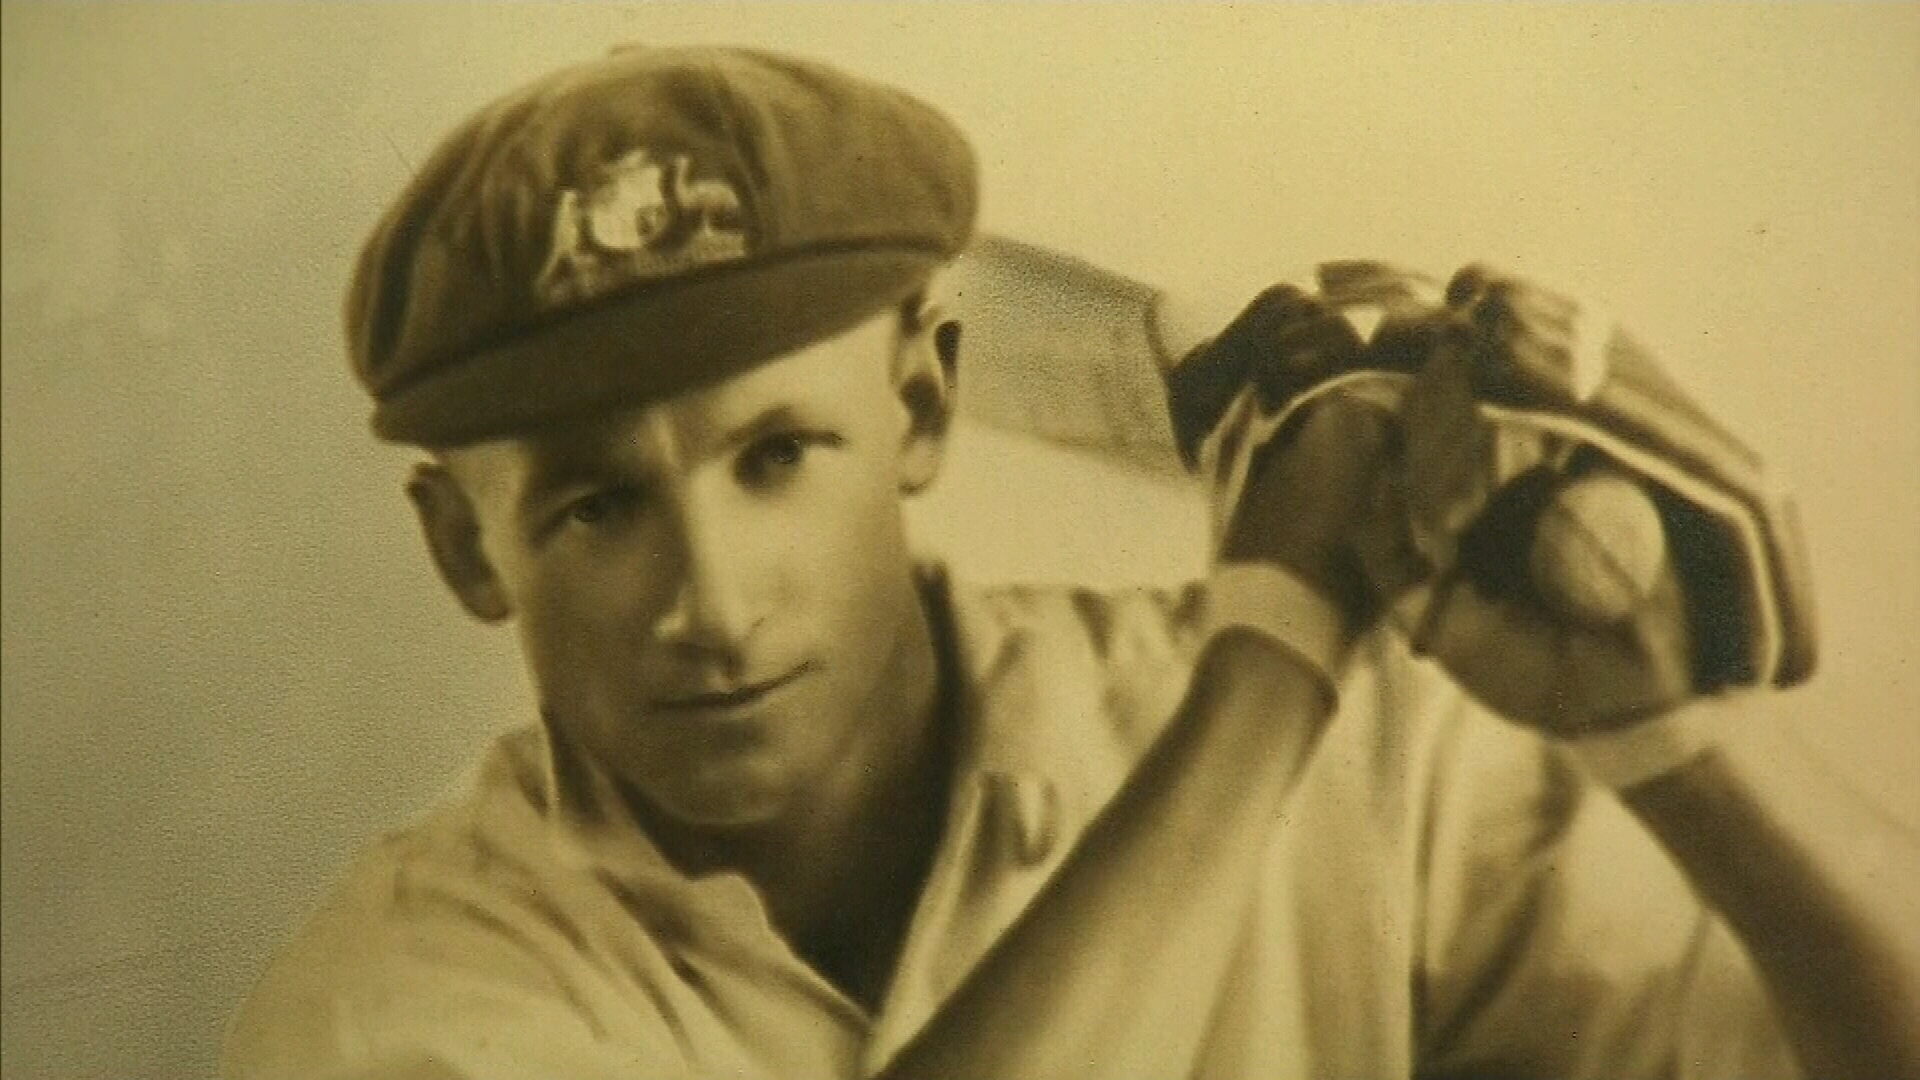 Bradman's 'first pitch' could be lost to retirement home